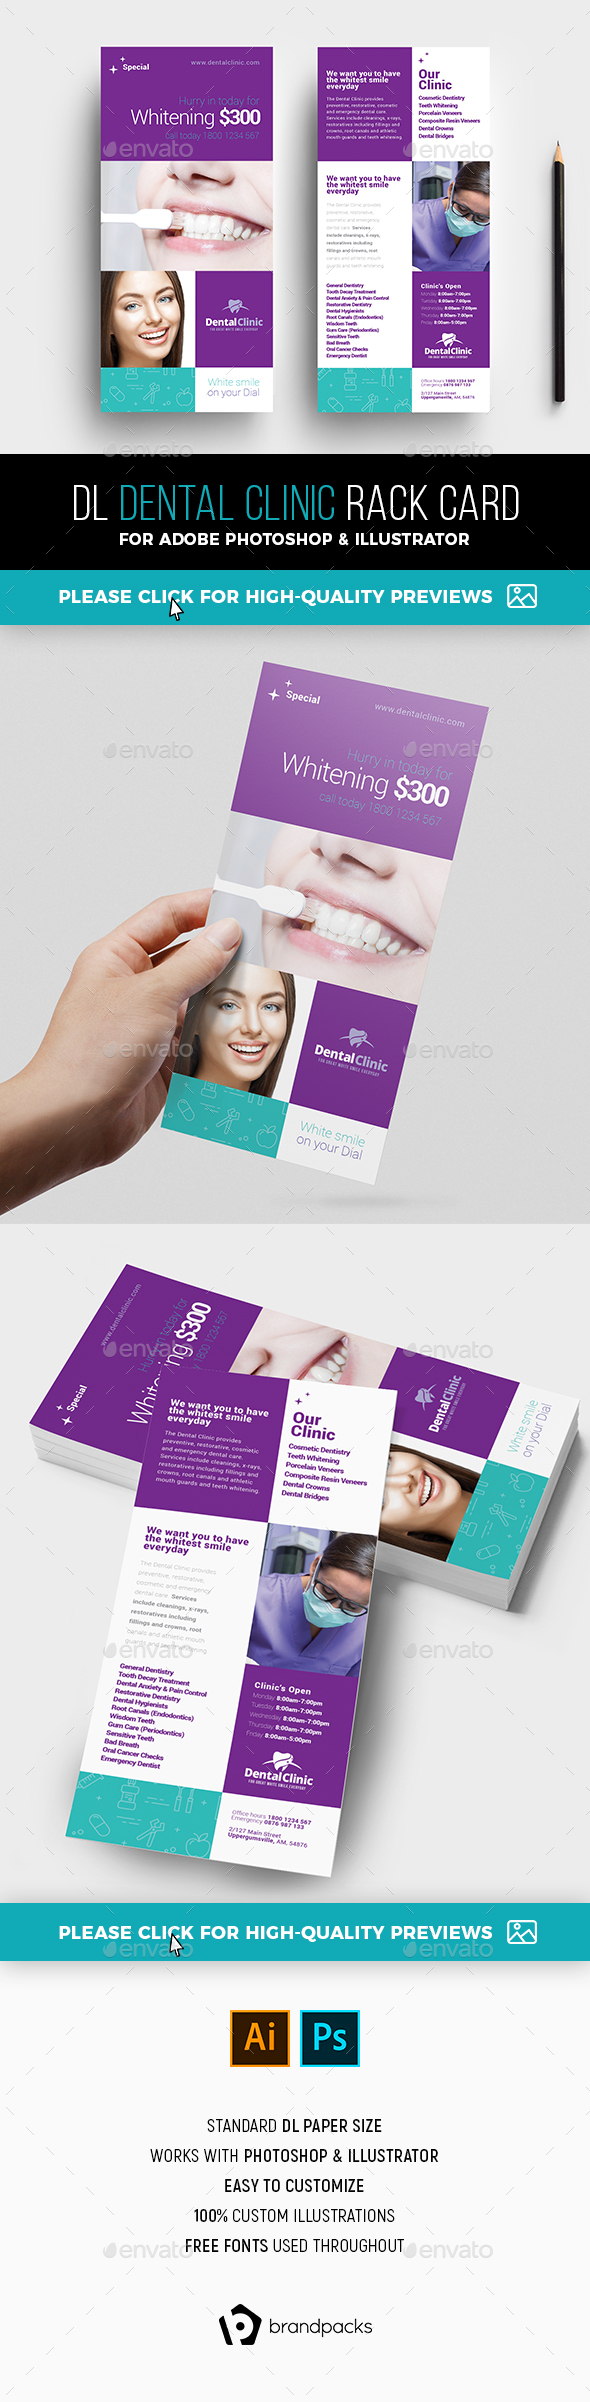 Dental Clinic Rack Card Template - Corporate Flyers